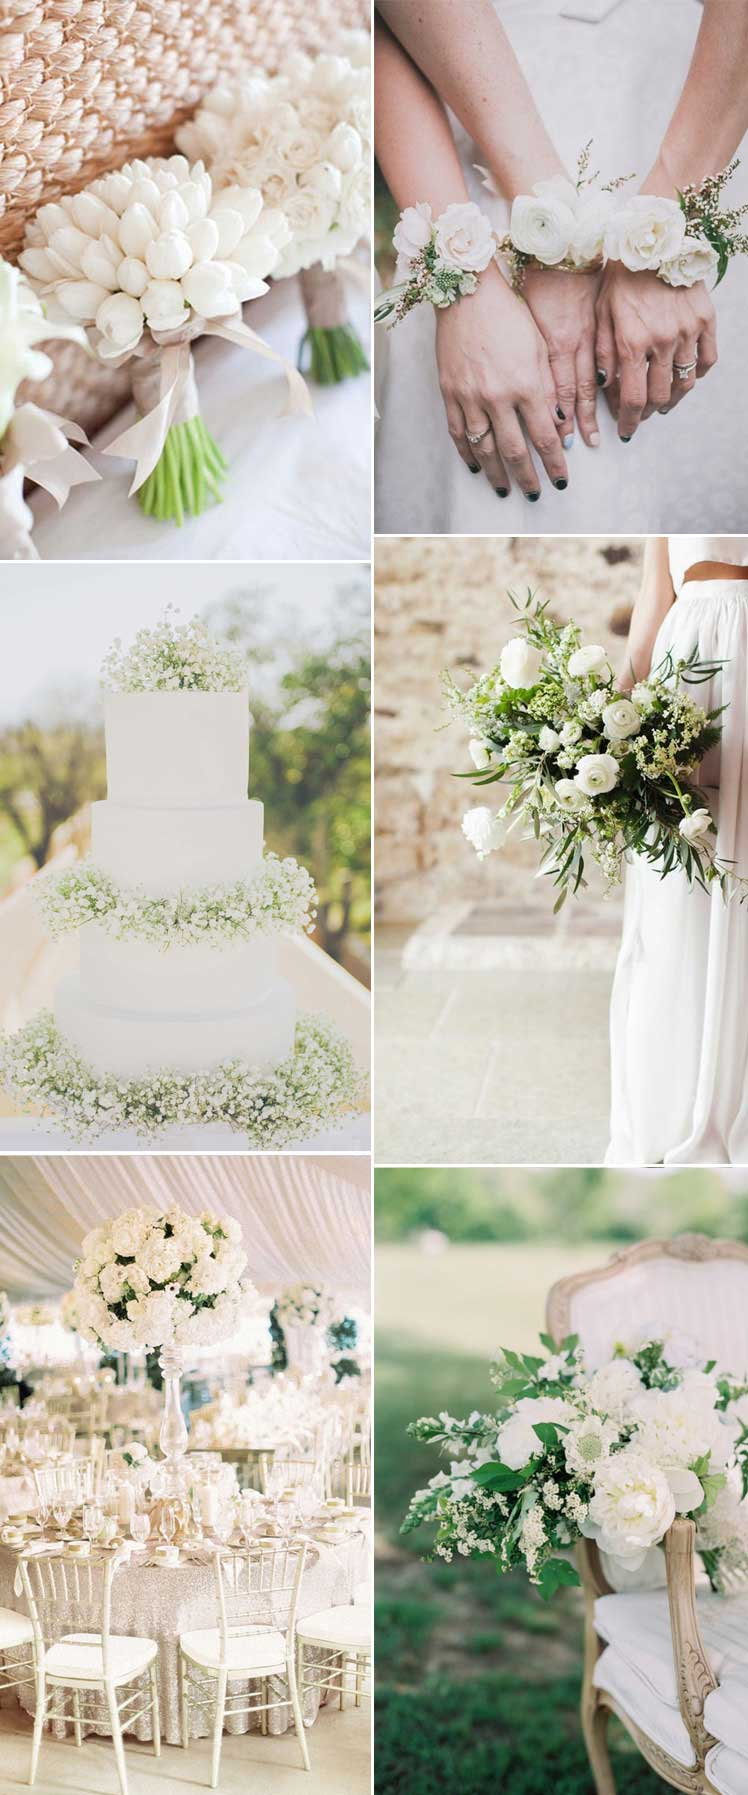 White flowers inspiration for a spring wedding